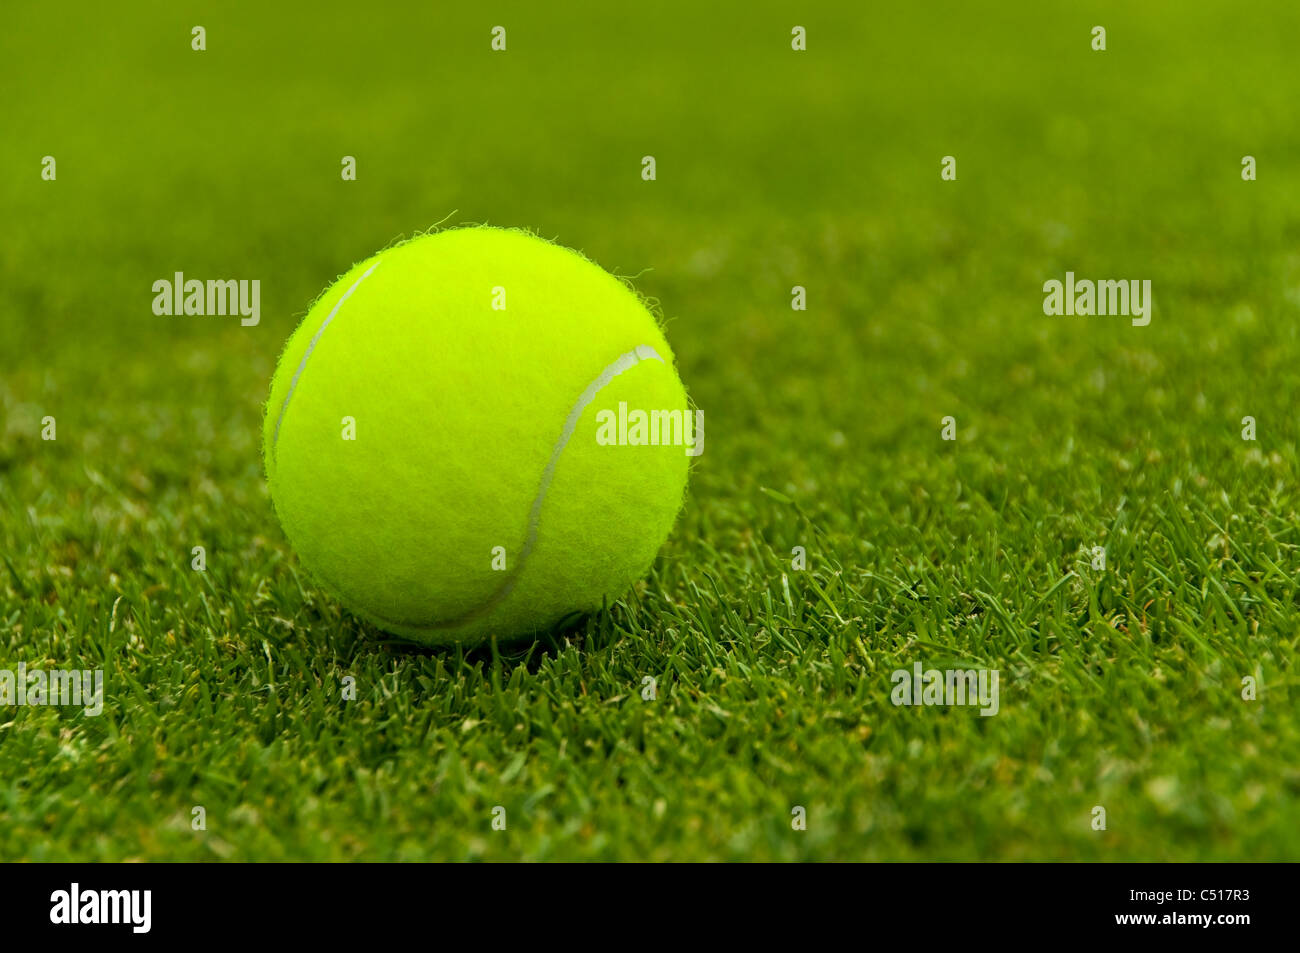 A tennis ball on a lawn tennis court - Stock Image